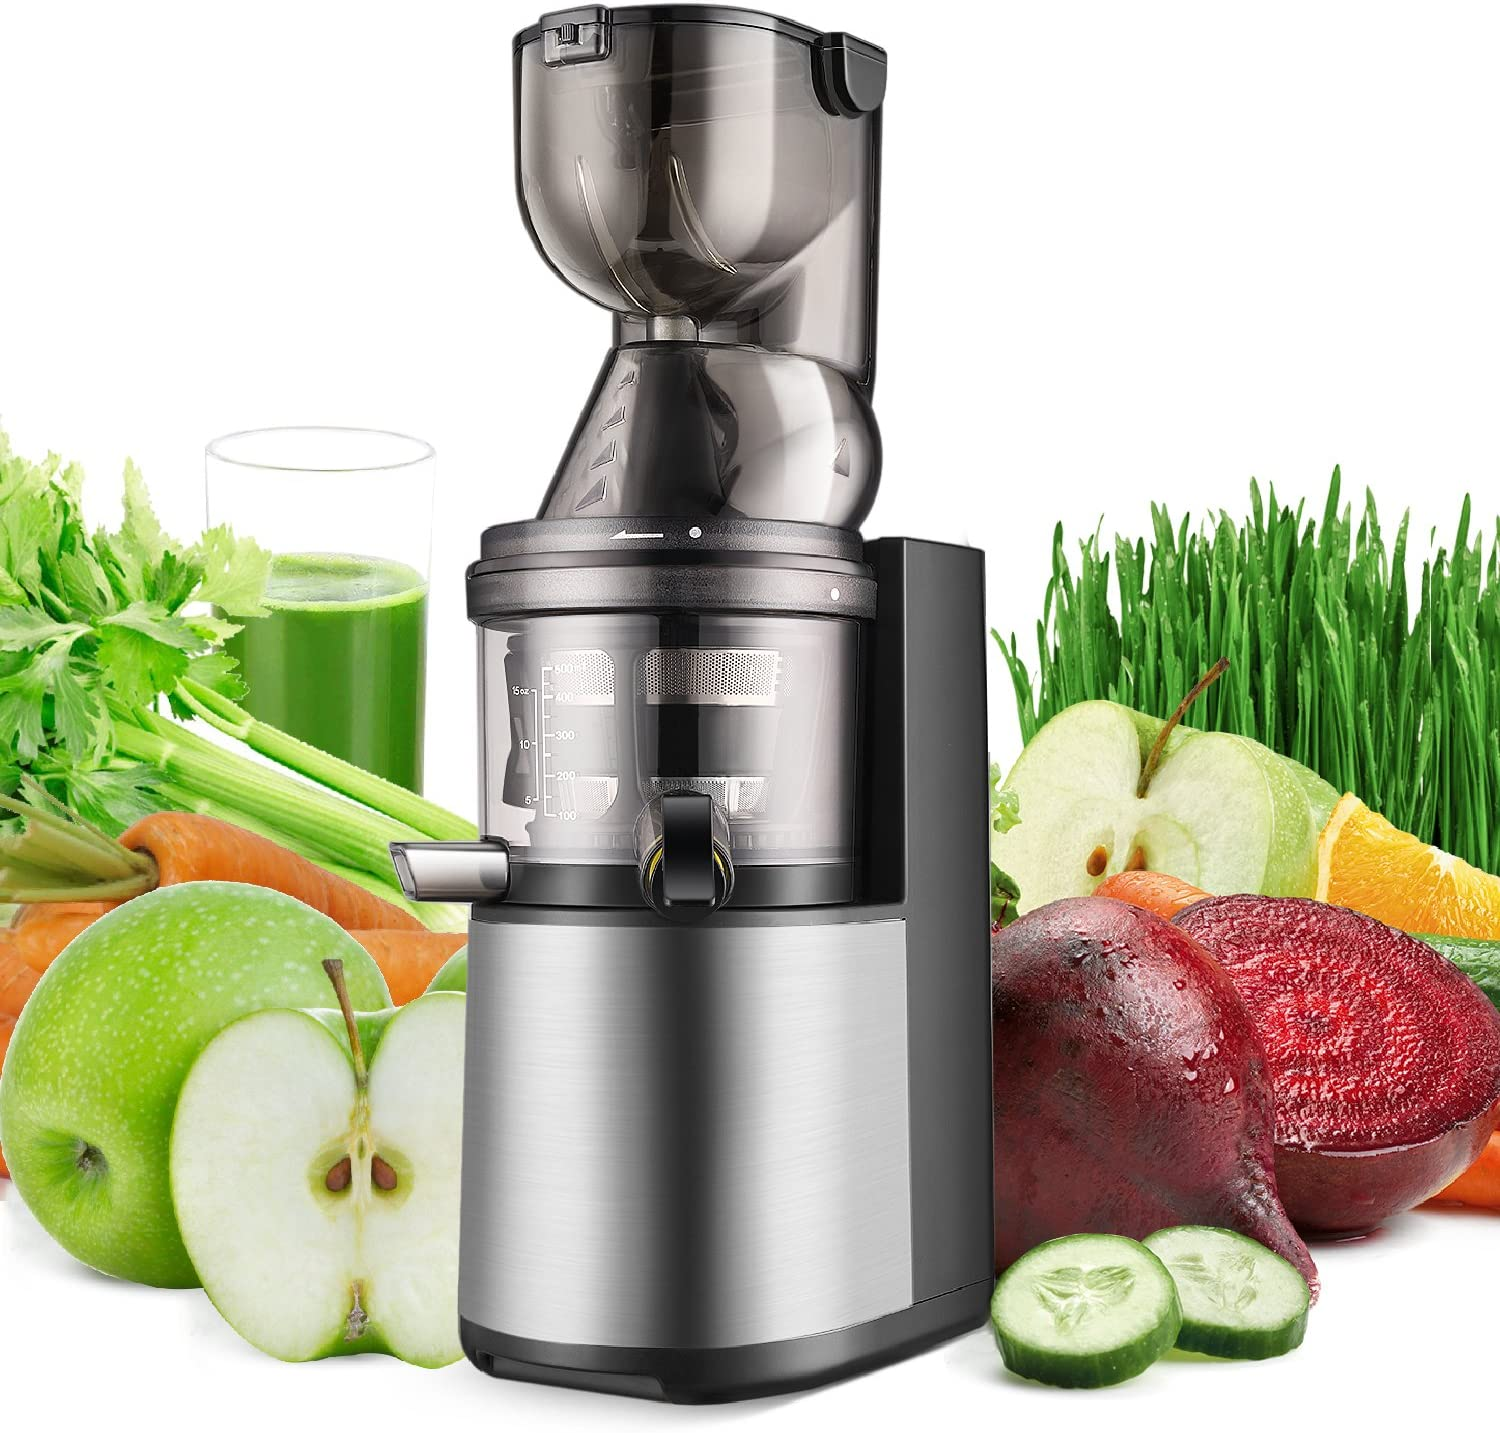 Flexzion Slow Masticating Juicer - Cold Press Machine Juice Extractor Easy to Clean with Juice Recipe Wide Feed Chute for High Nutrient Fruit Vegetable